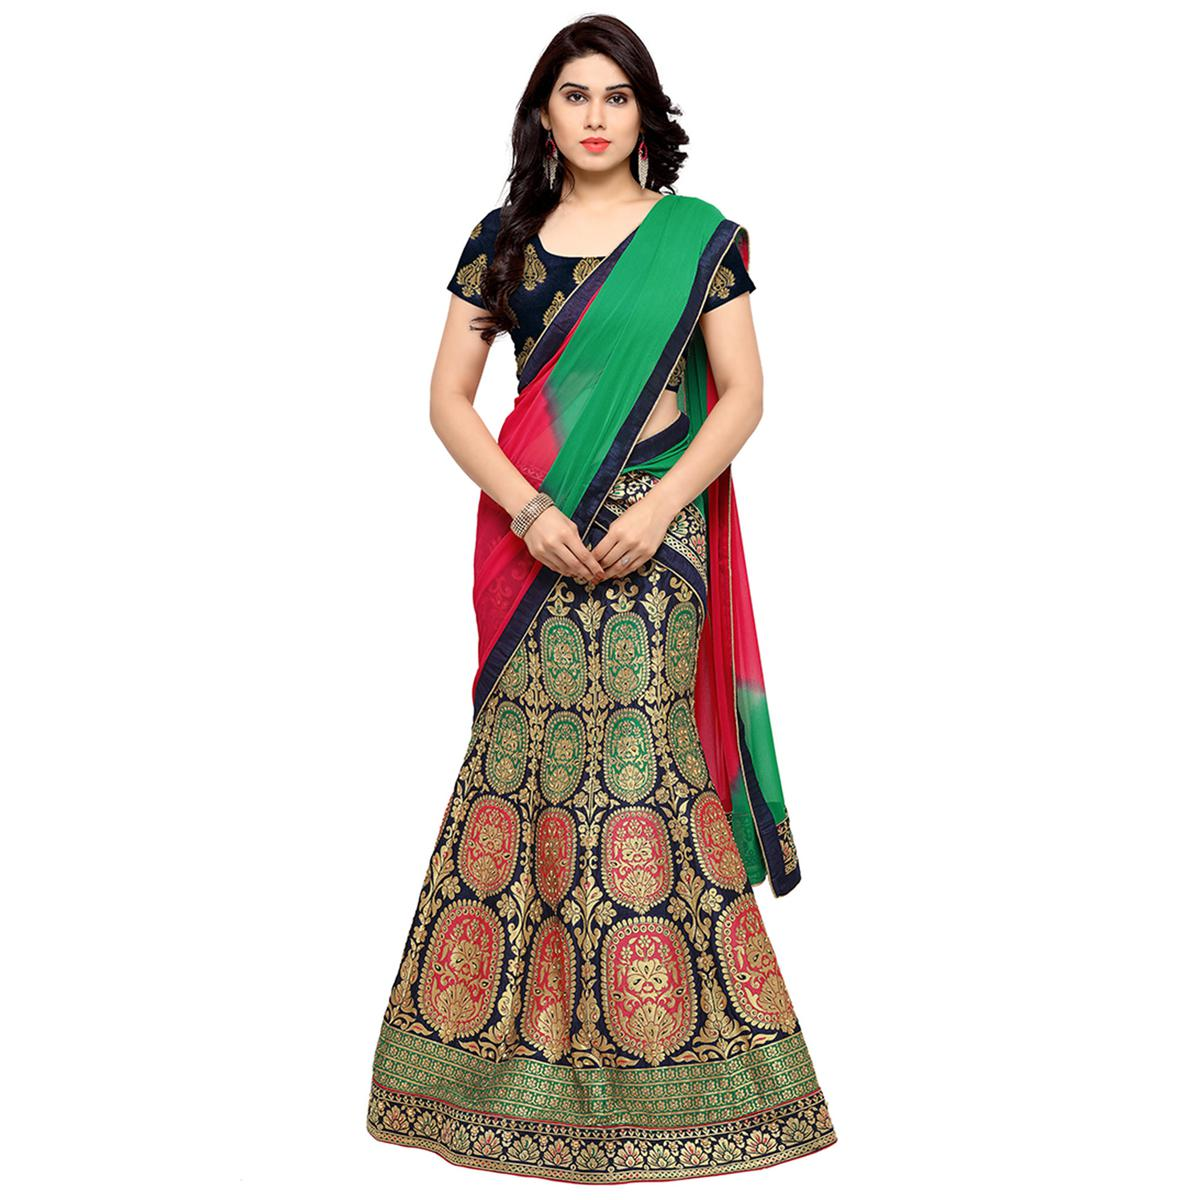 Navy Blue Colored Banarasi Work Jacquard Silk Lehenga Choli